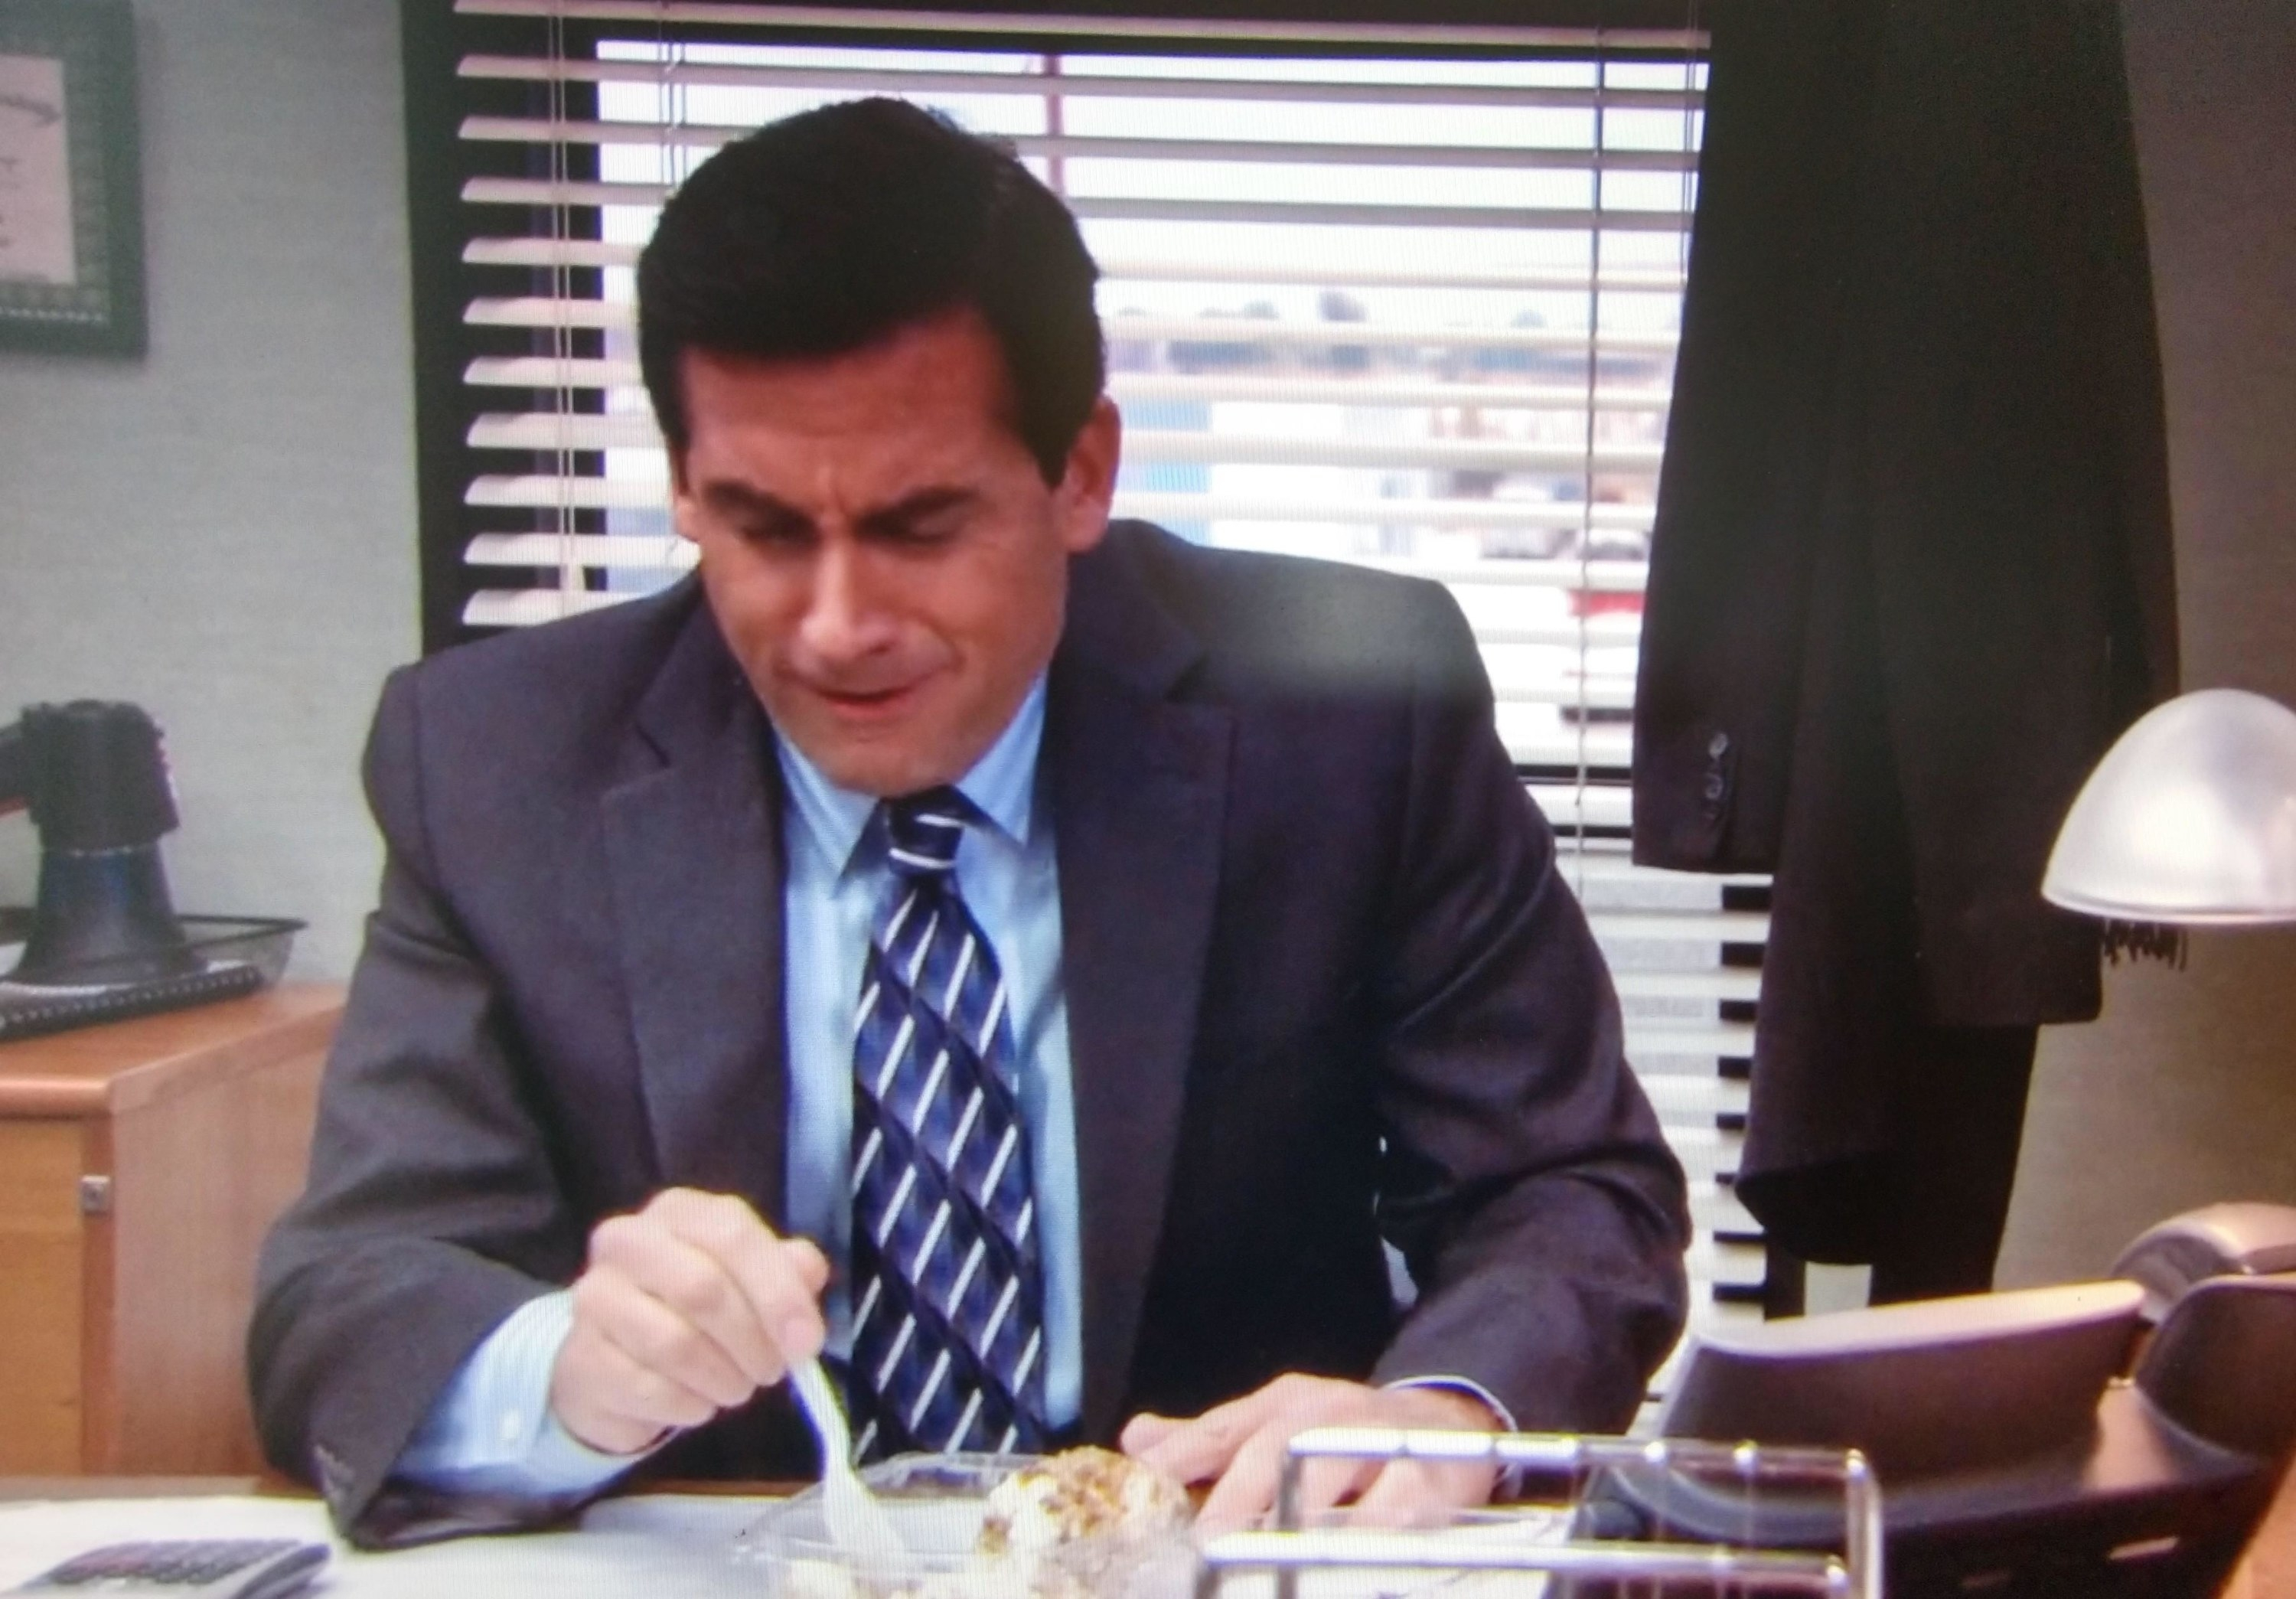 Michael eating some dessert at his desk while talking